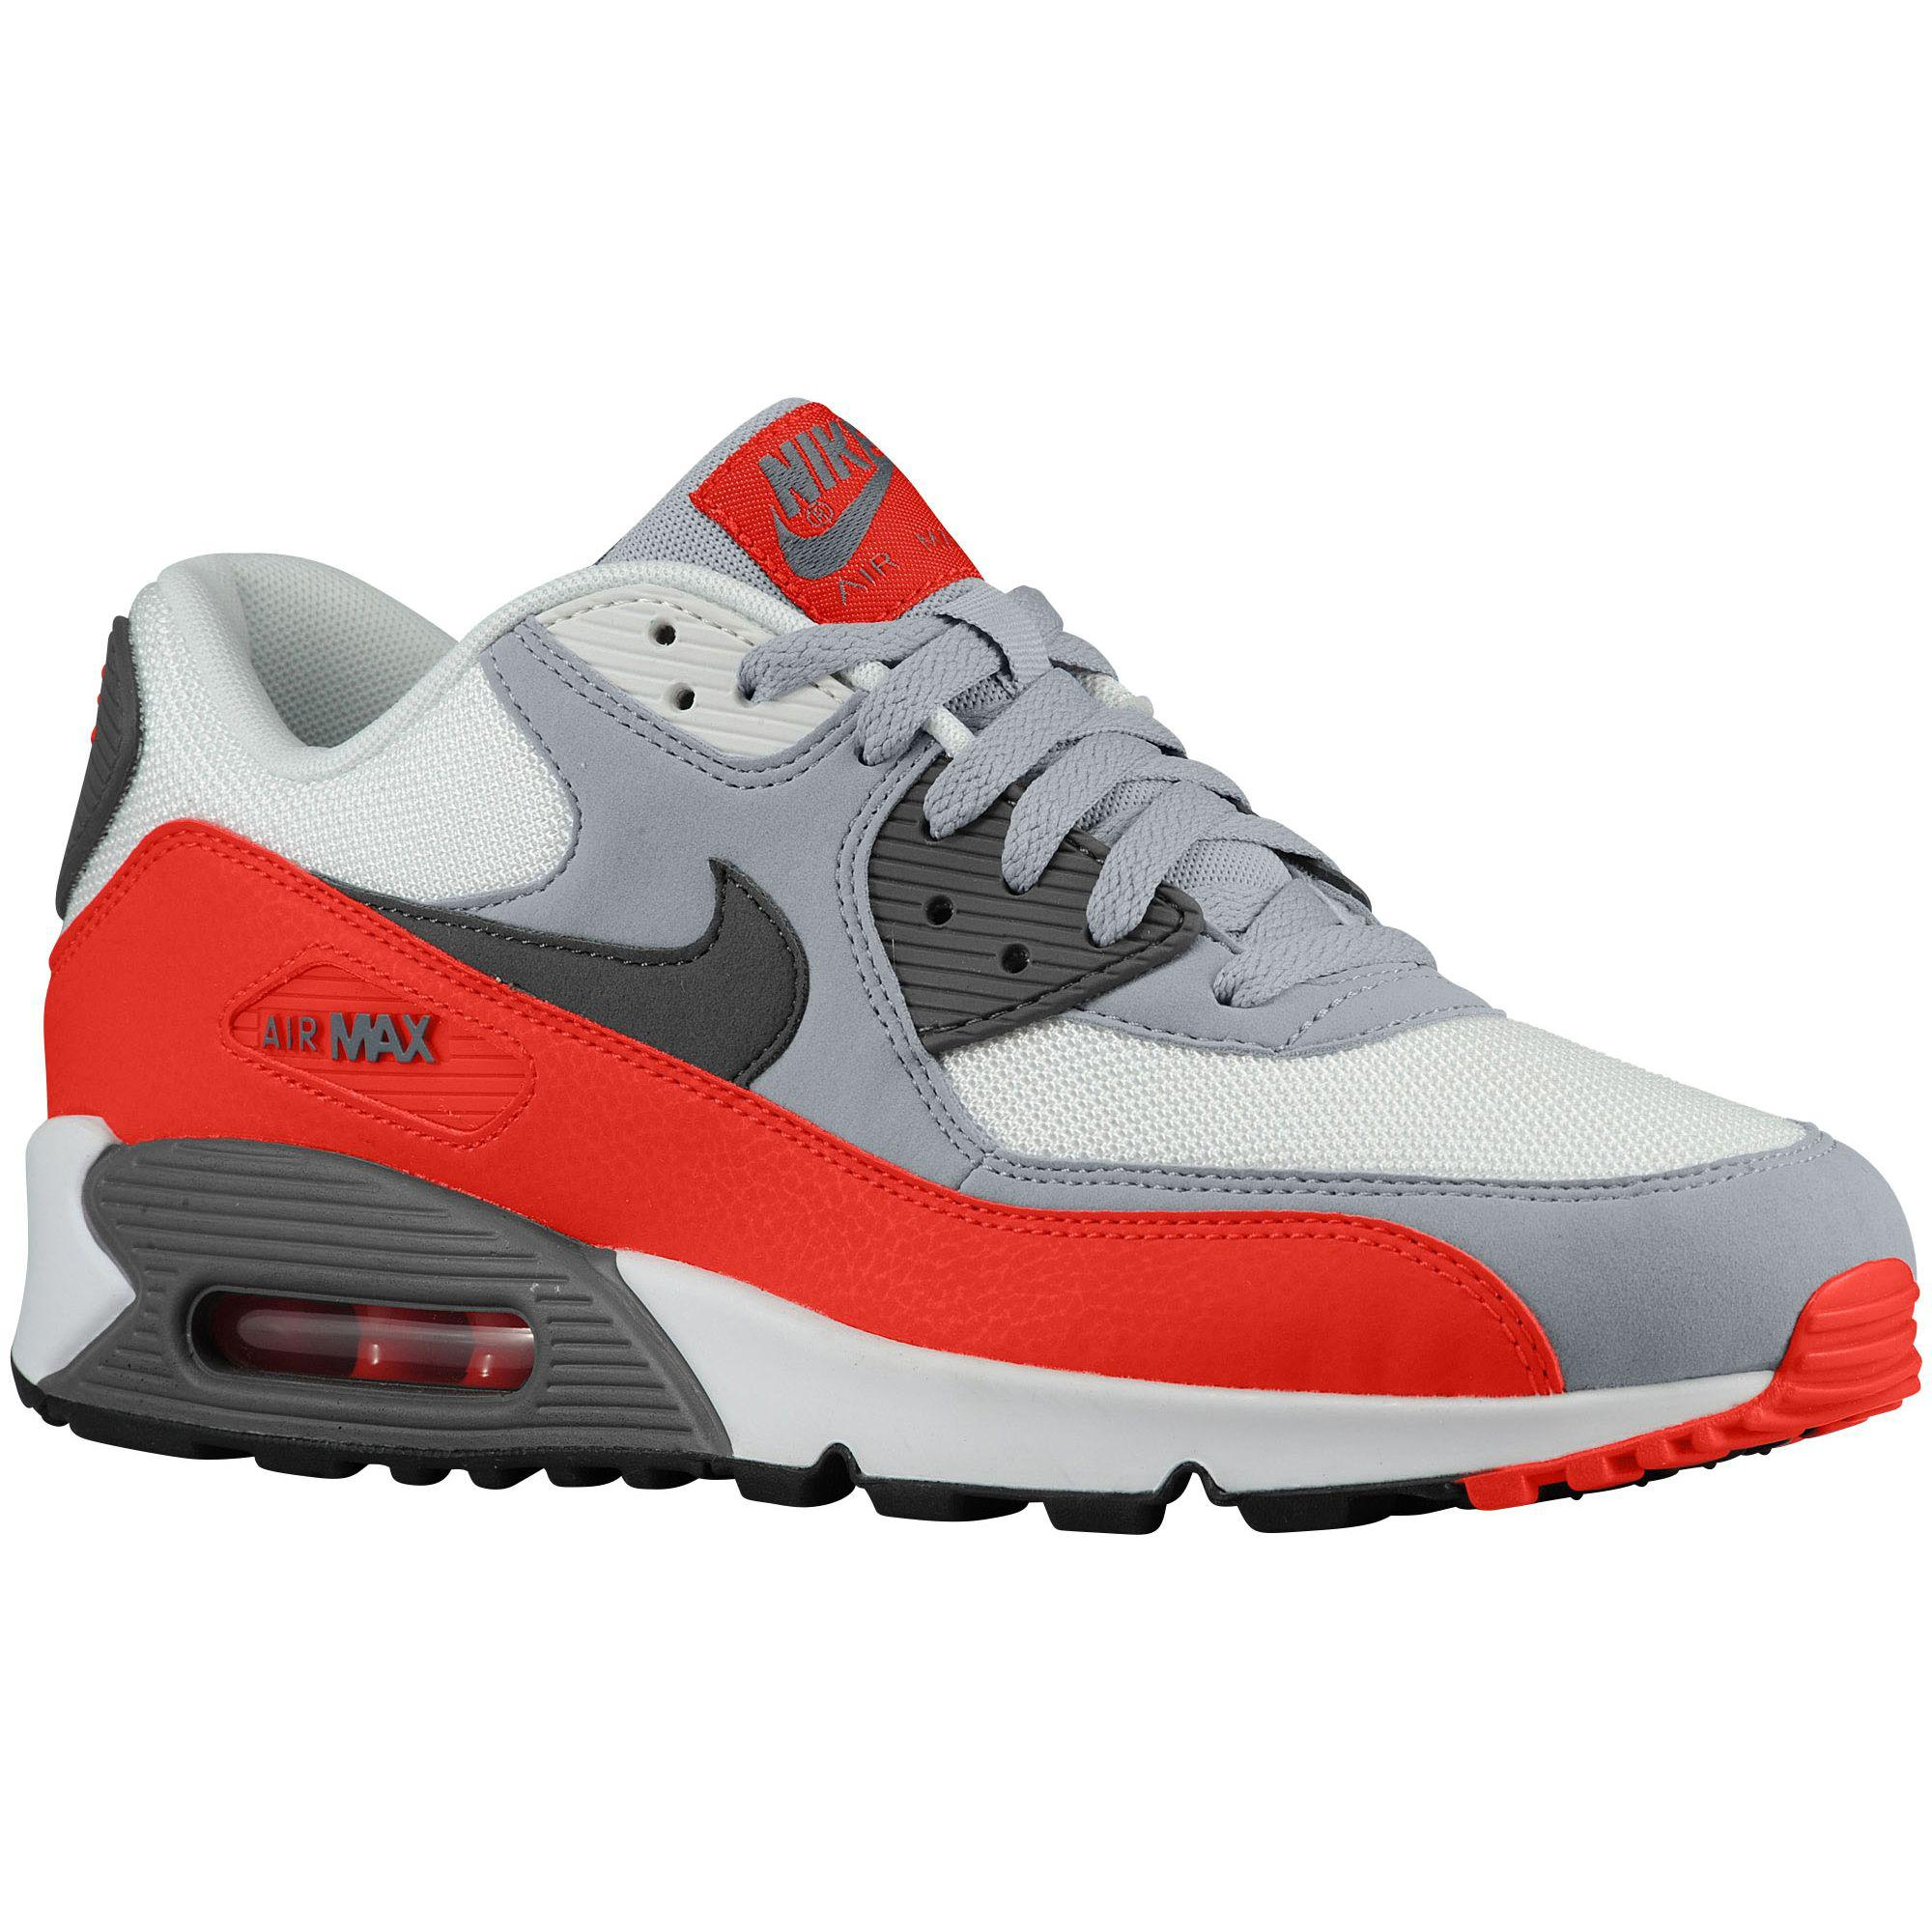 Nike Air Max 90 - Men s at Champs Sports from Champs Sports cb76a8c17a